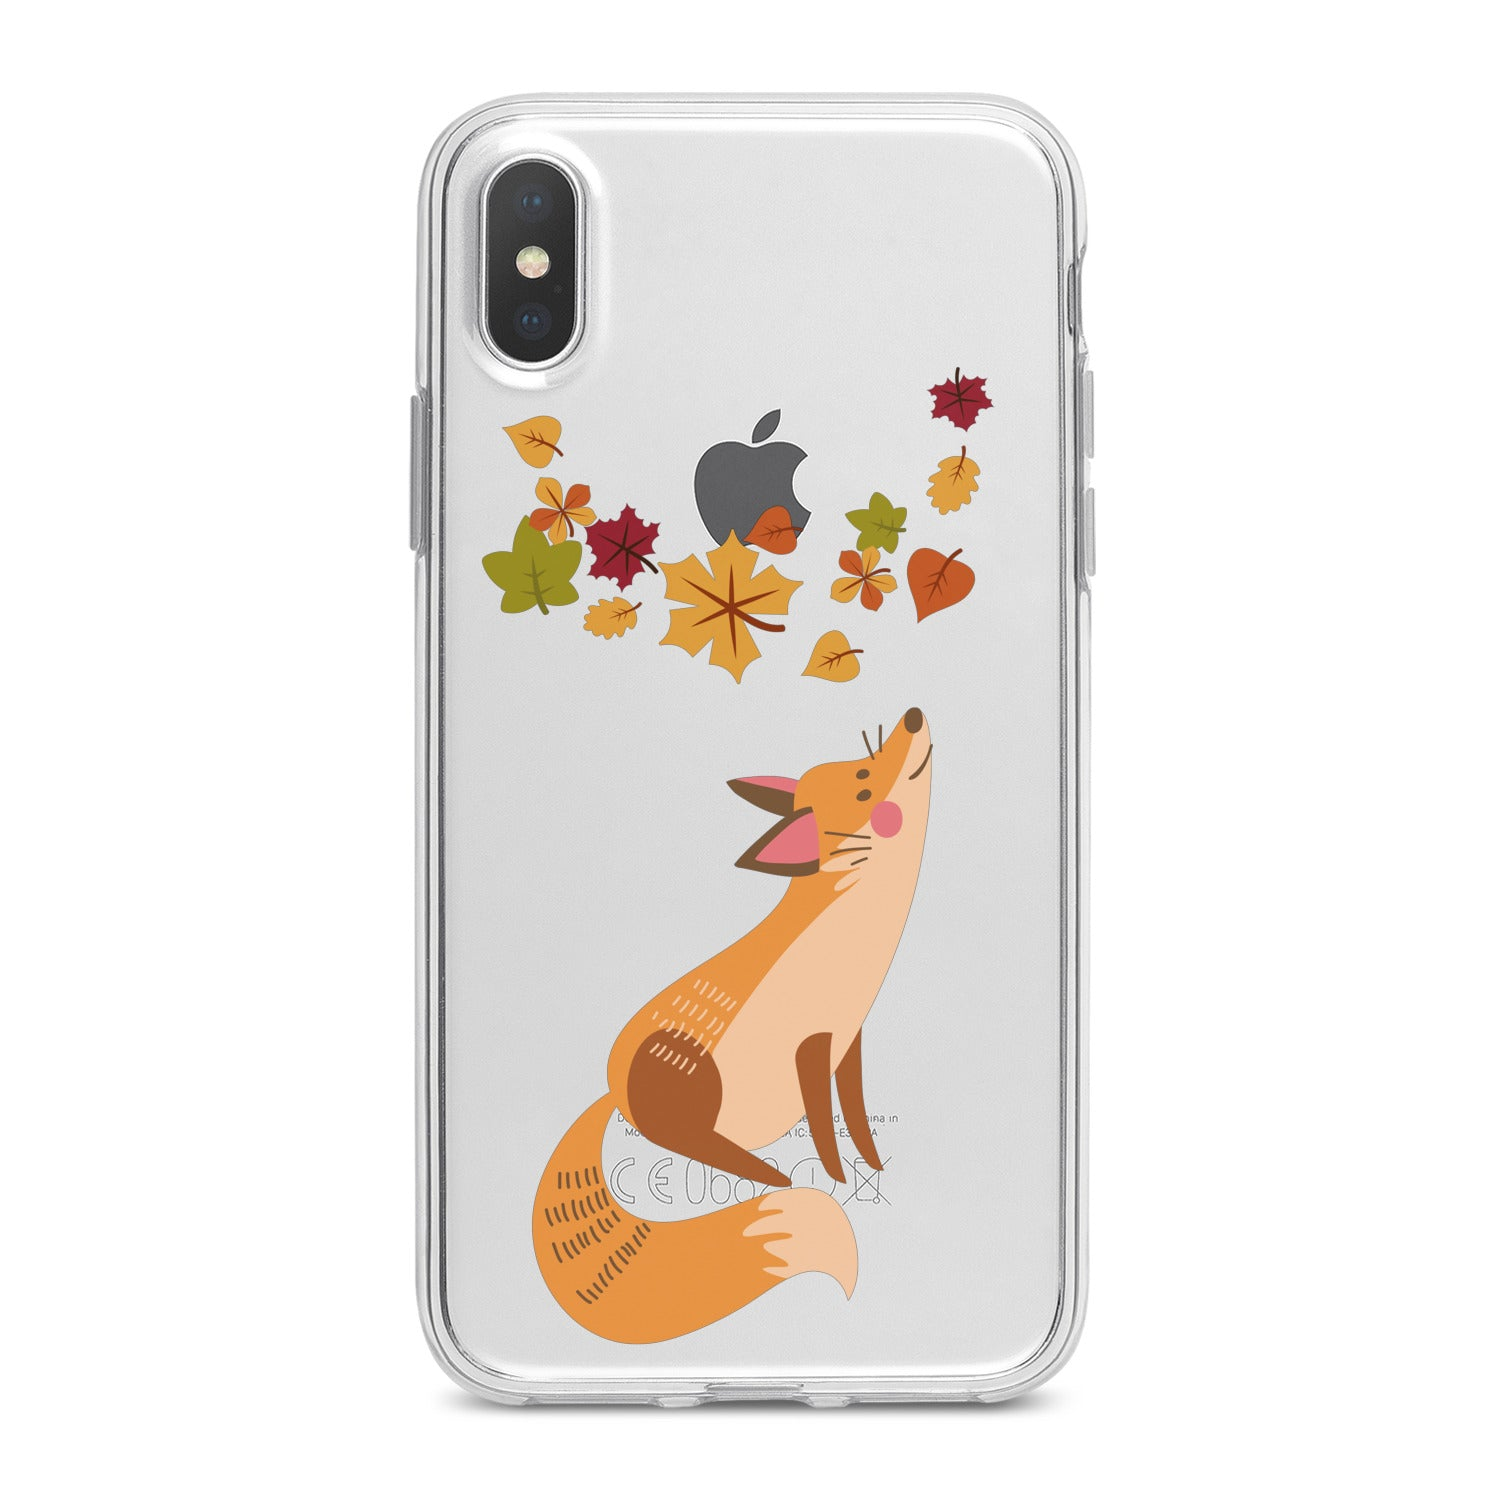 Lex Altern Cute Fox Animal Phone Case for your iPhone & Android phone.